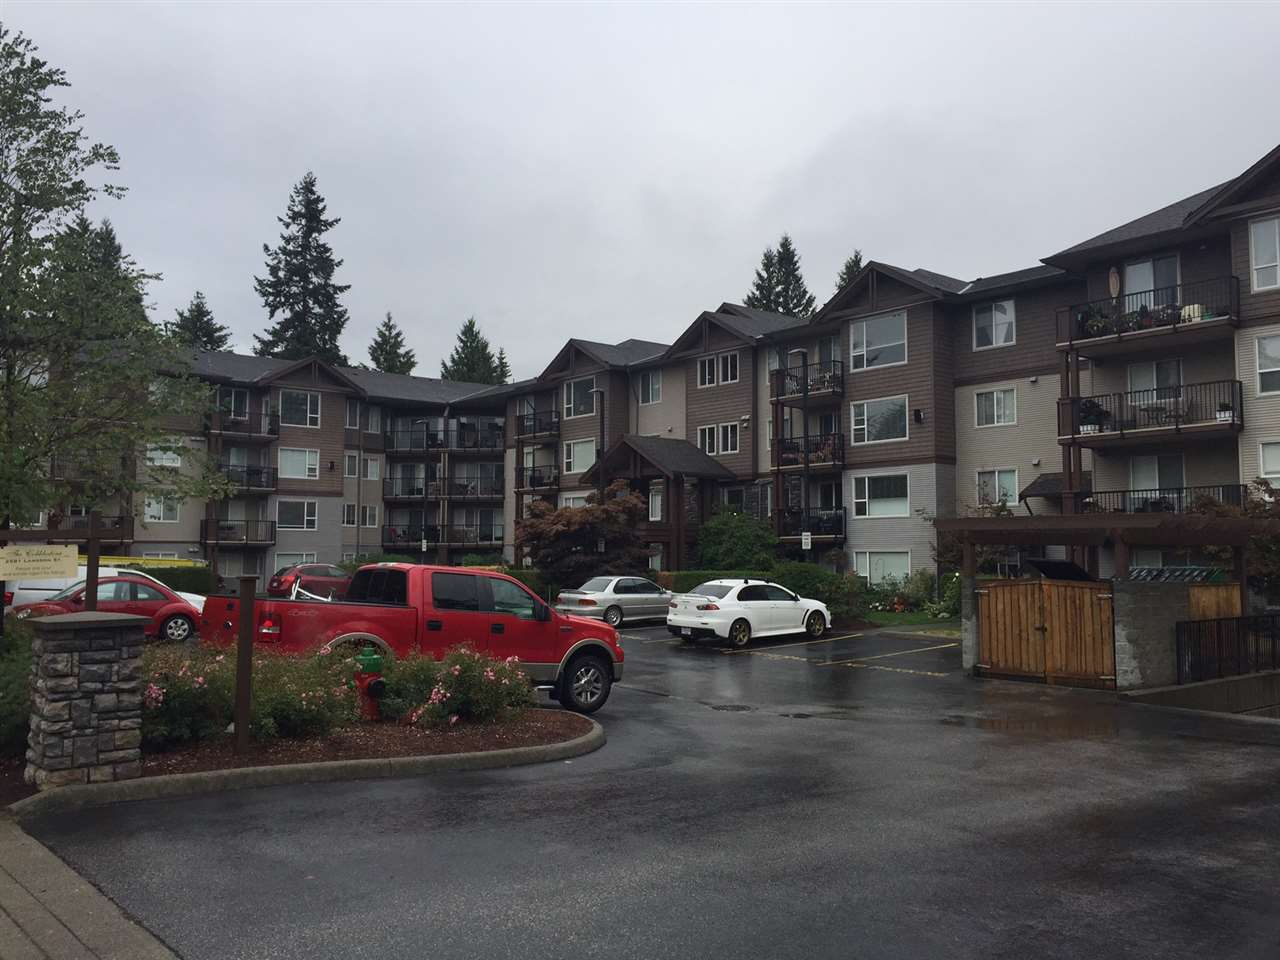 Main Photo: 113 2581 LANGDON STREET in Abbotsford: Abbotsford West Condo for sale : MLS® # R2207307